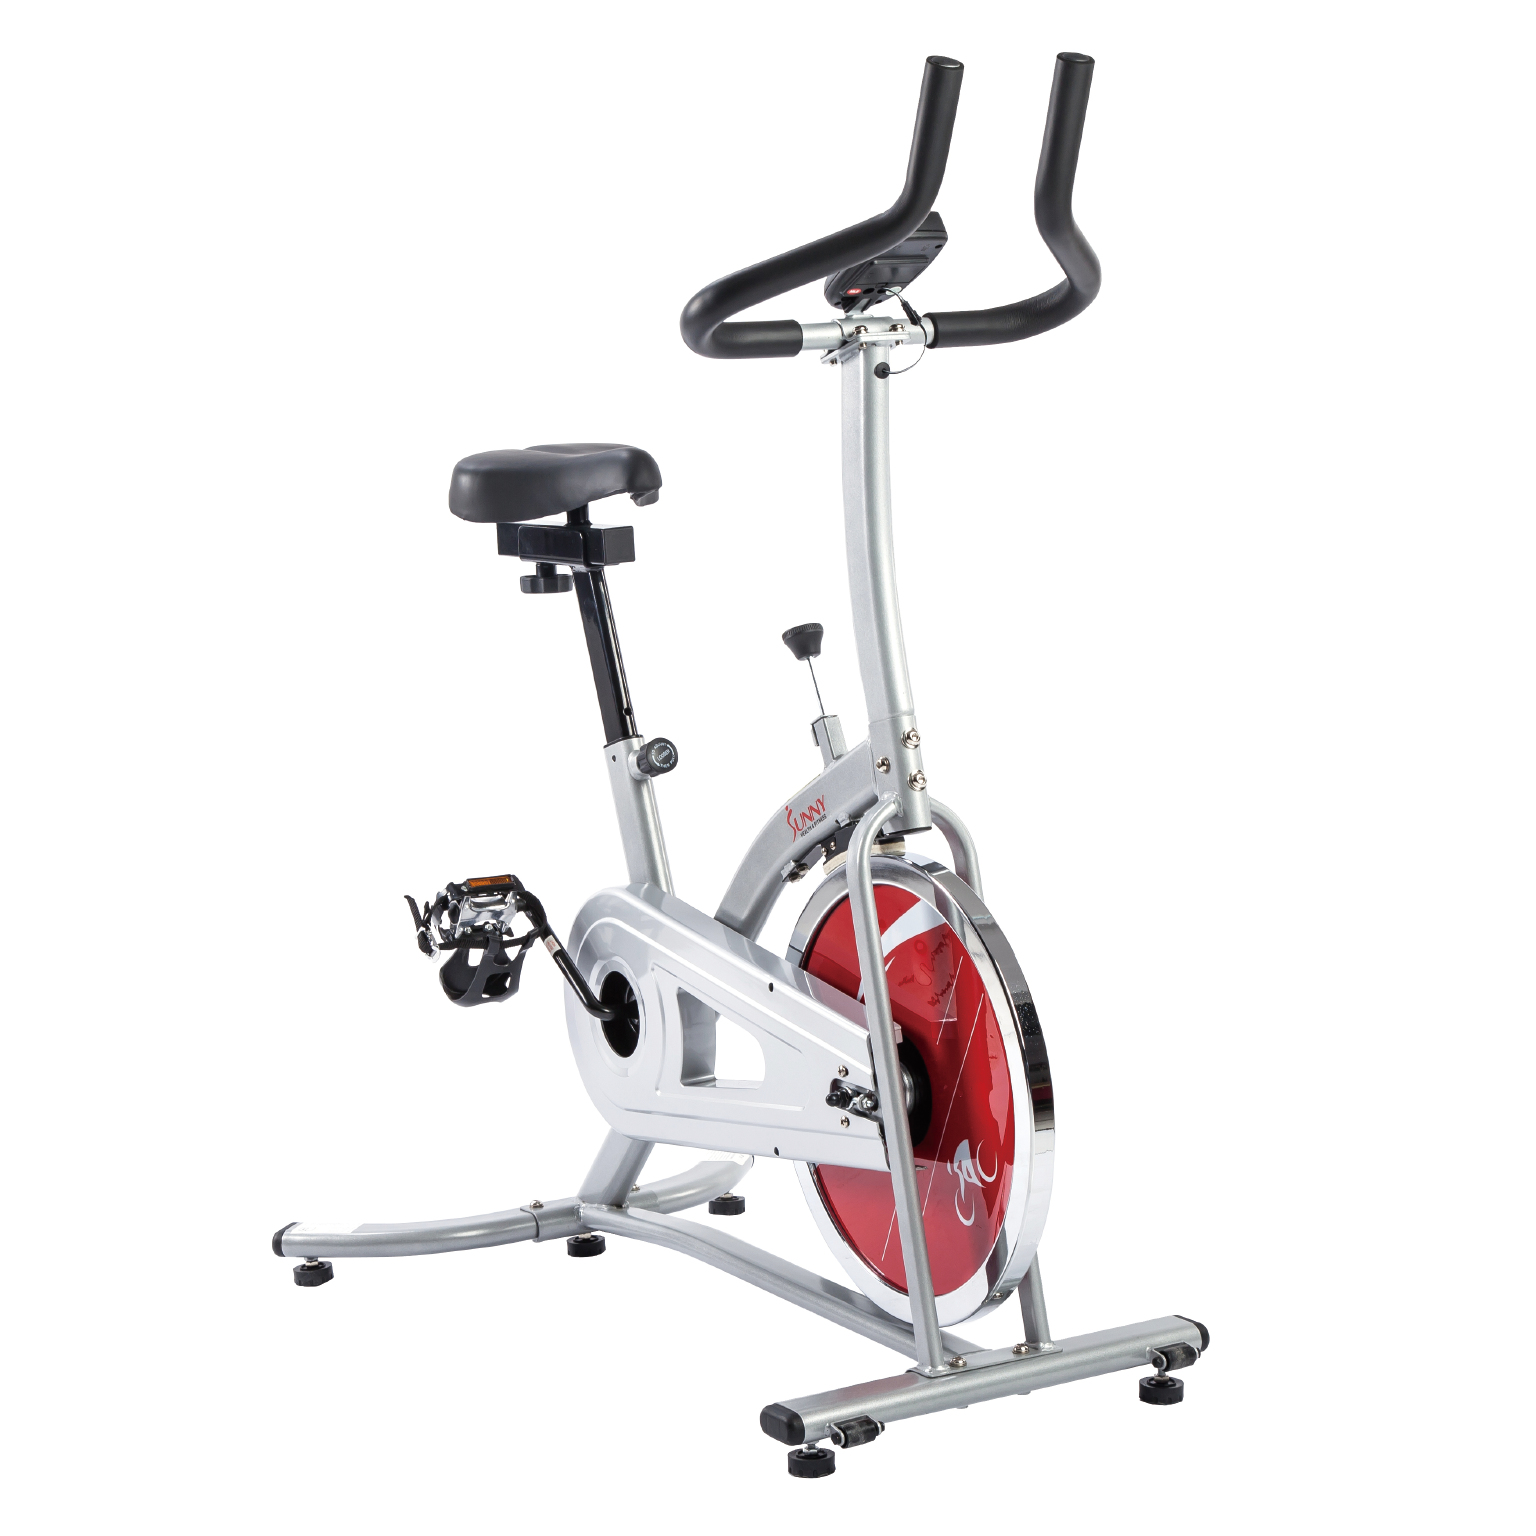 Sunny Health & Fitness SF-B1203 Indoor Cycling Bike Black